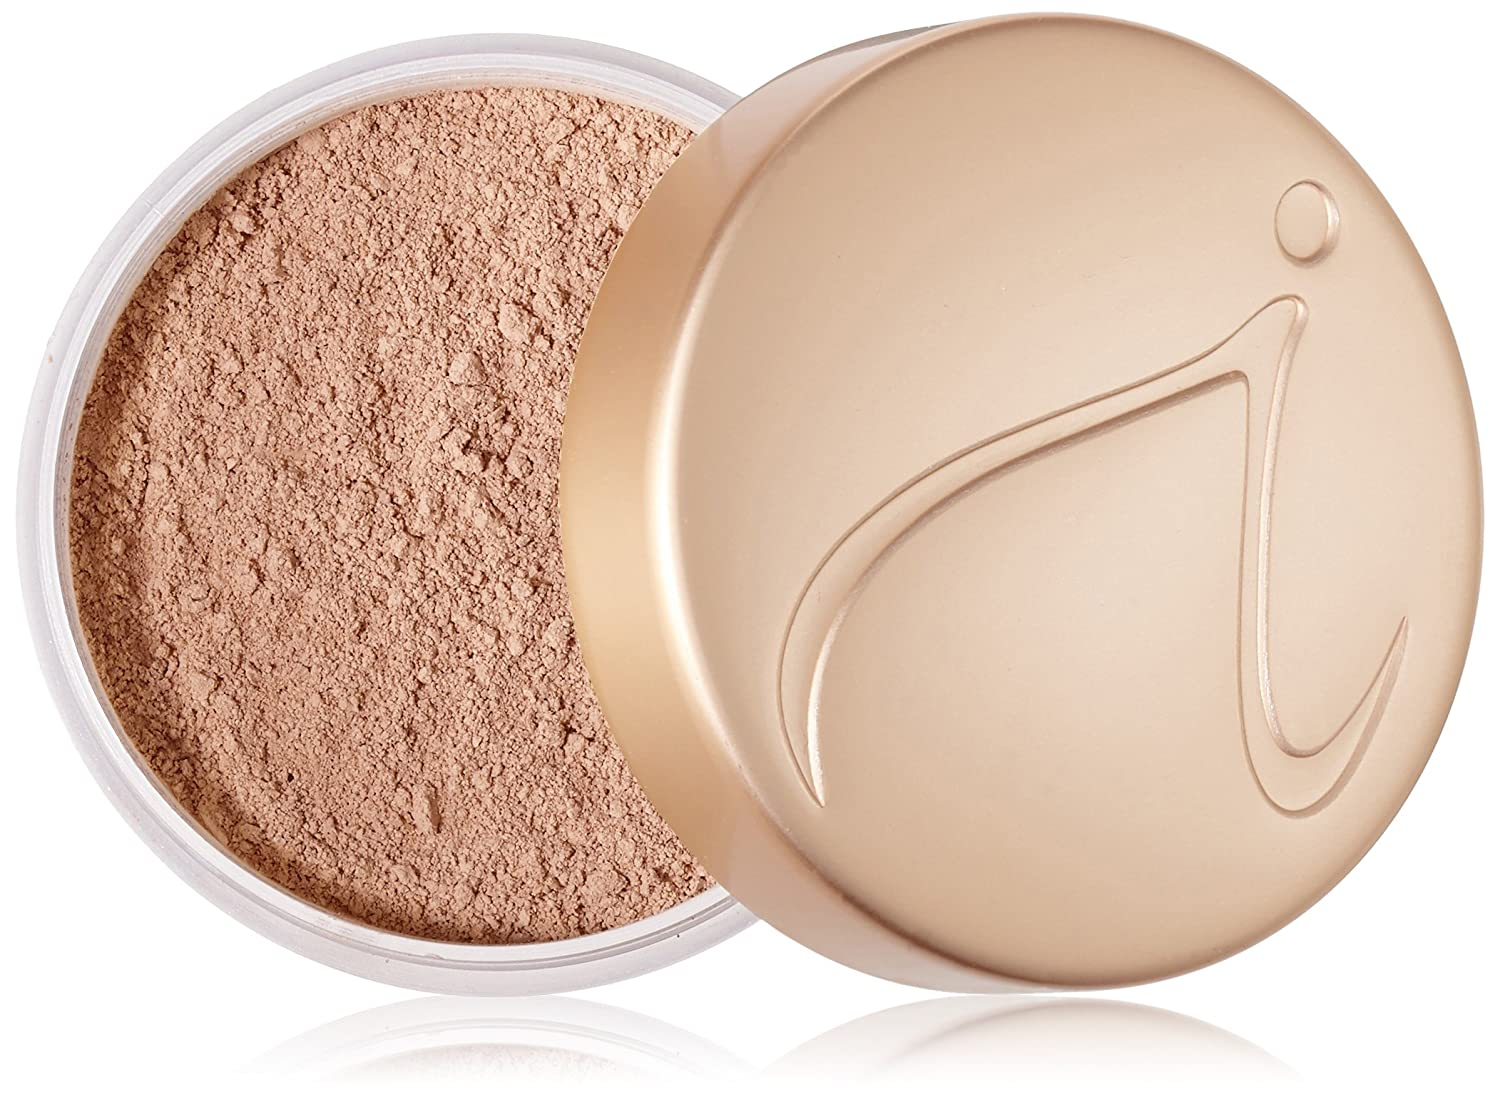 Jane Iredale Amazing base Loose Mineral Powder 10.5 g Iredale Mineral Cosmetics 11012